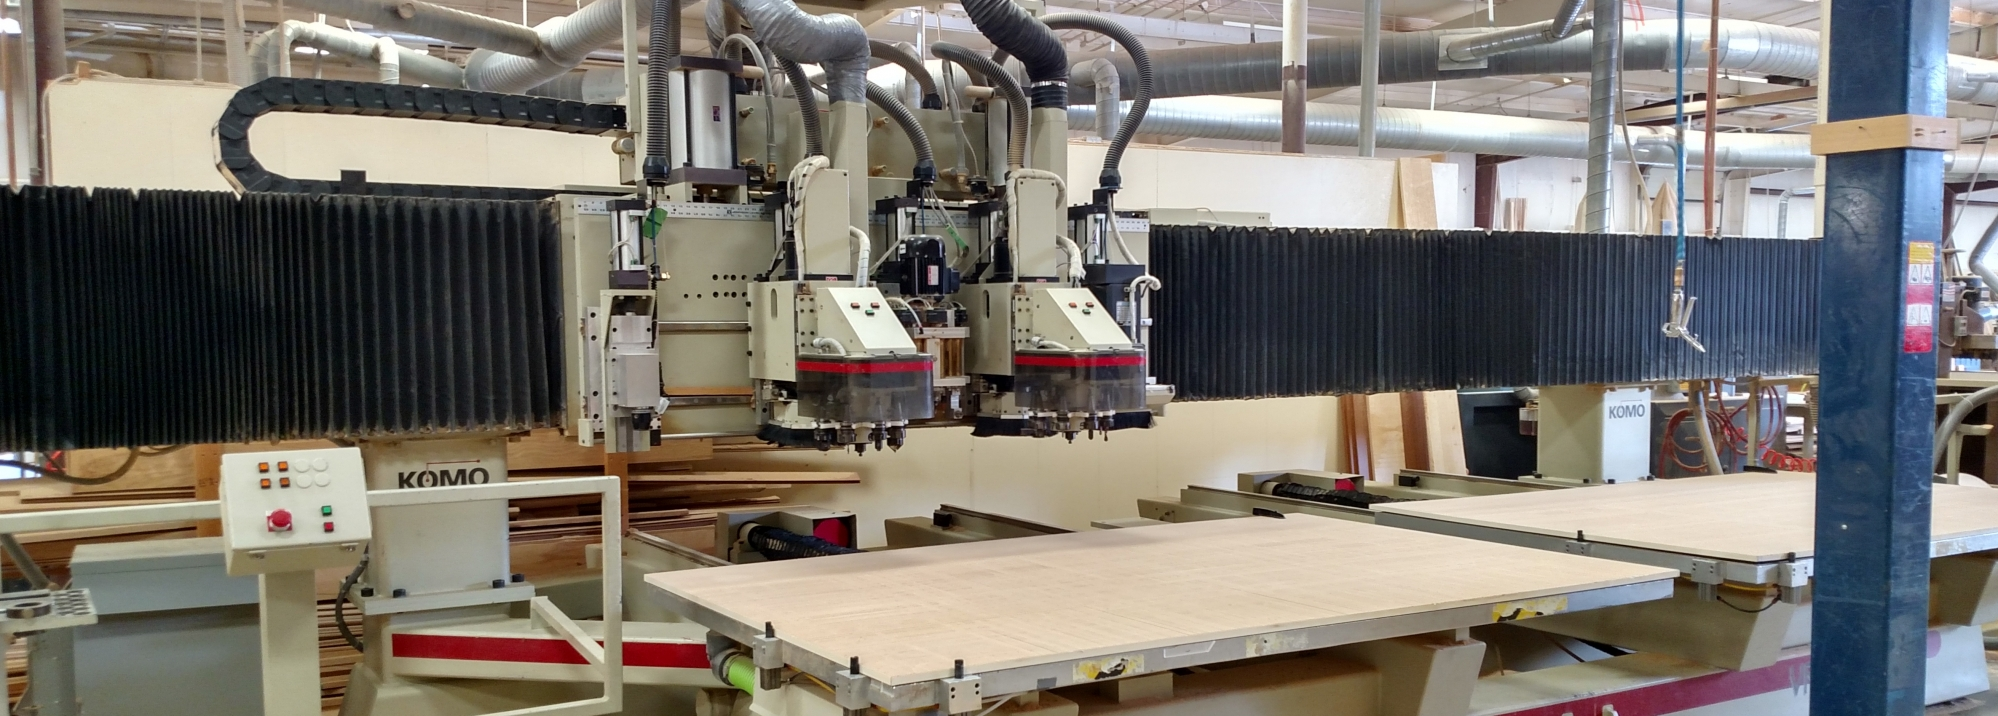 Cnc-wood-router Header Image